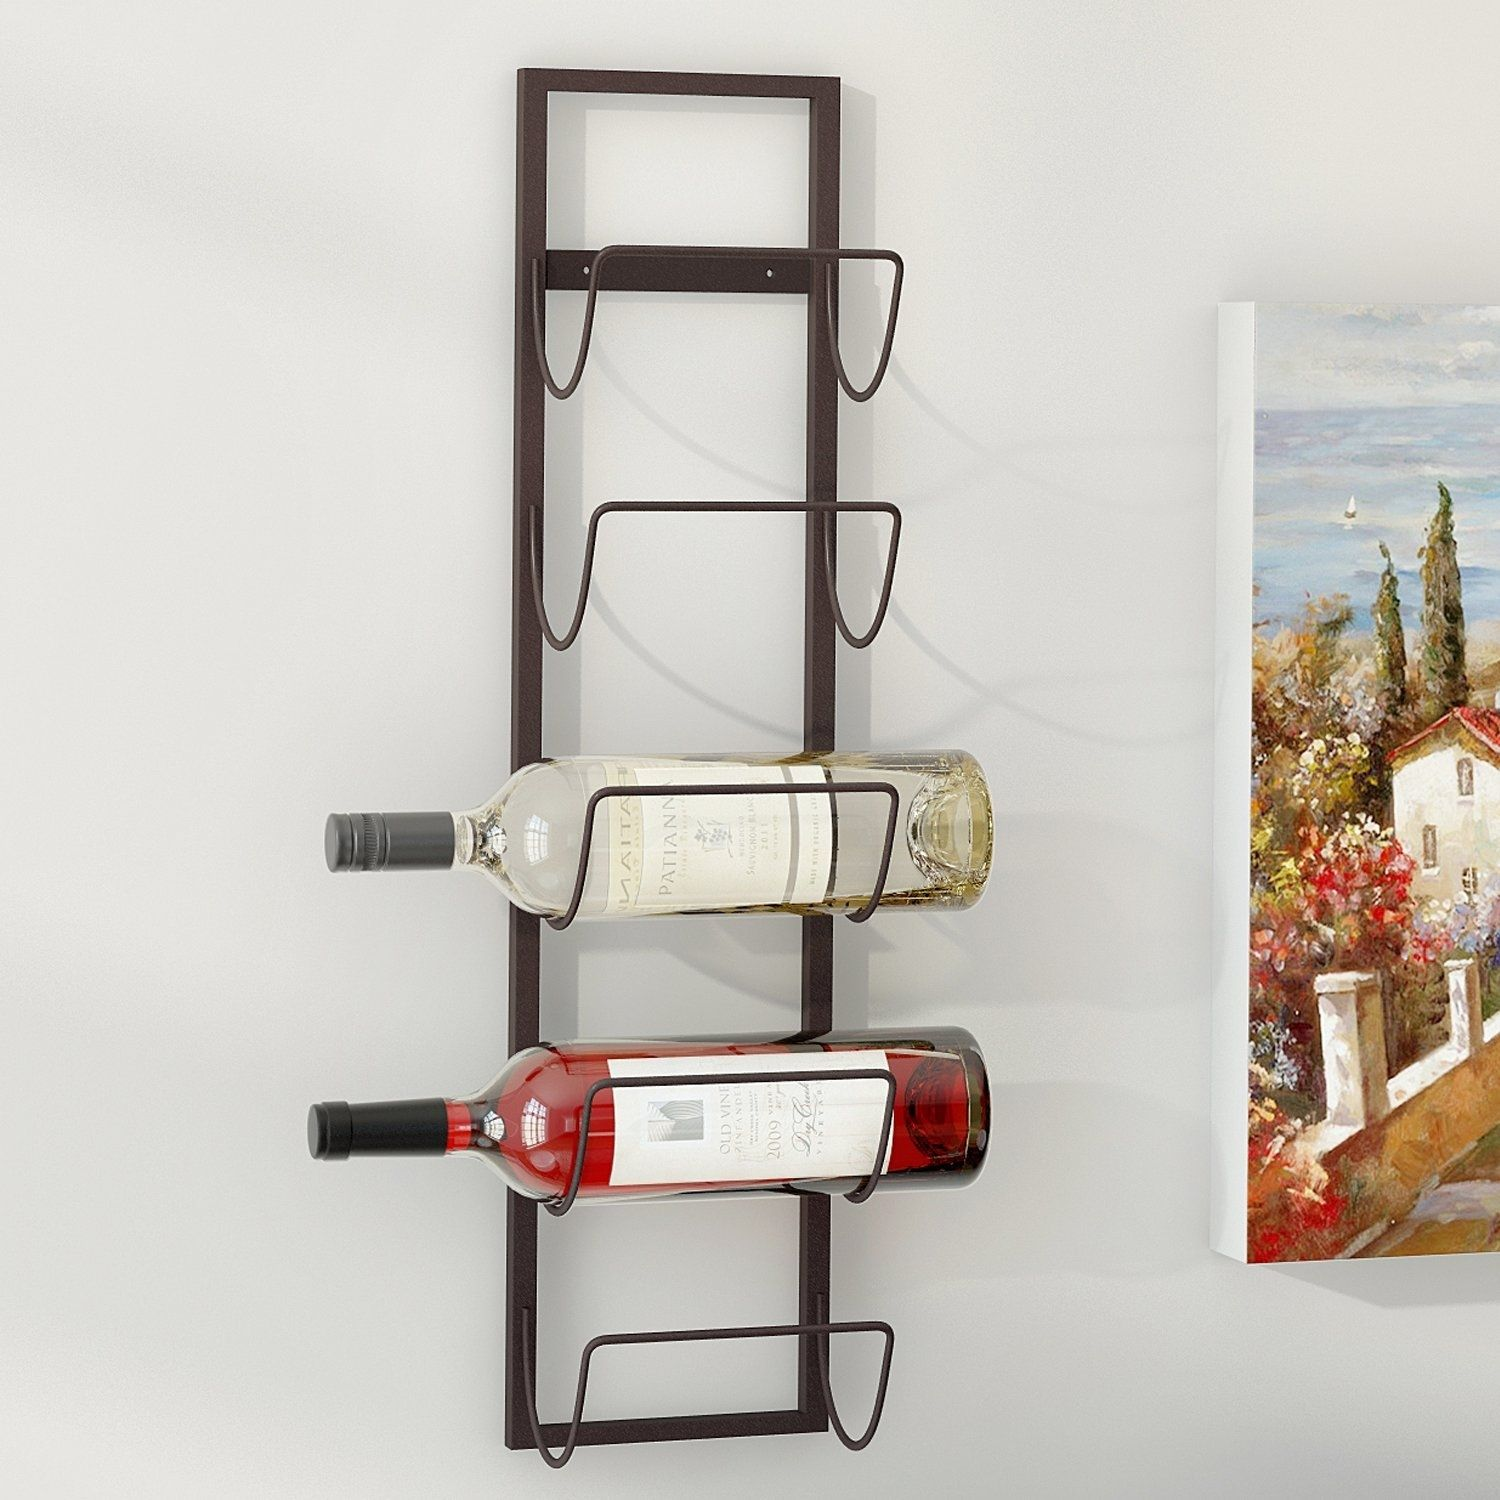 Image Of Wall Mount Wine Rack 12 Bottles Stainless Steel Wine Rack Bar With Wall Wine Rack Wall Wine Rack For Wine Rack Wall Wall Mounted Wine Rack Wine Rack